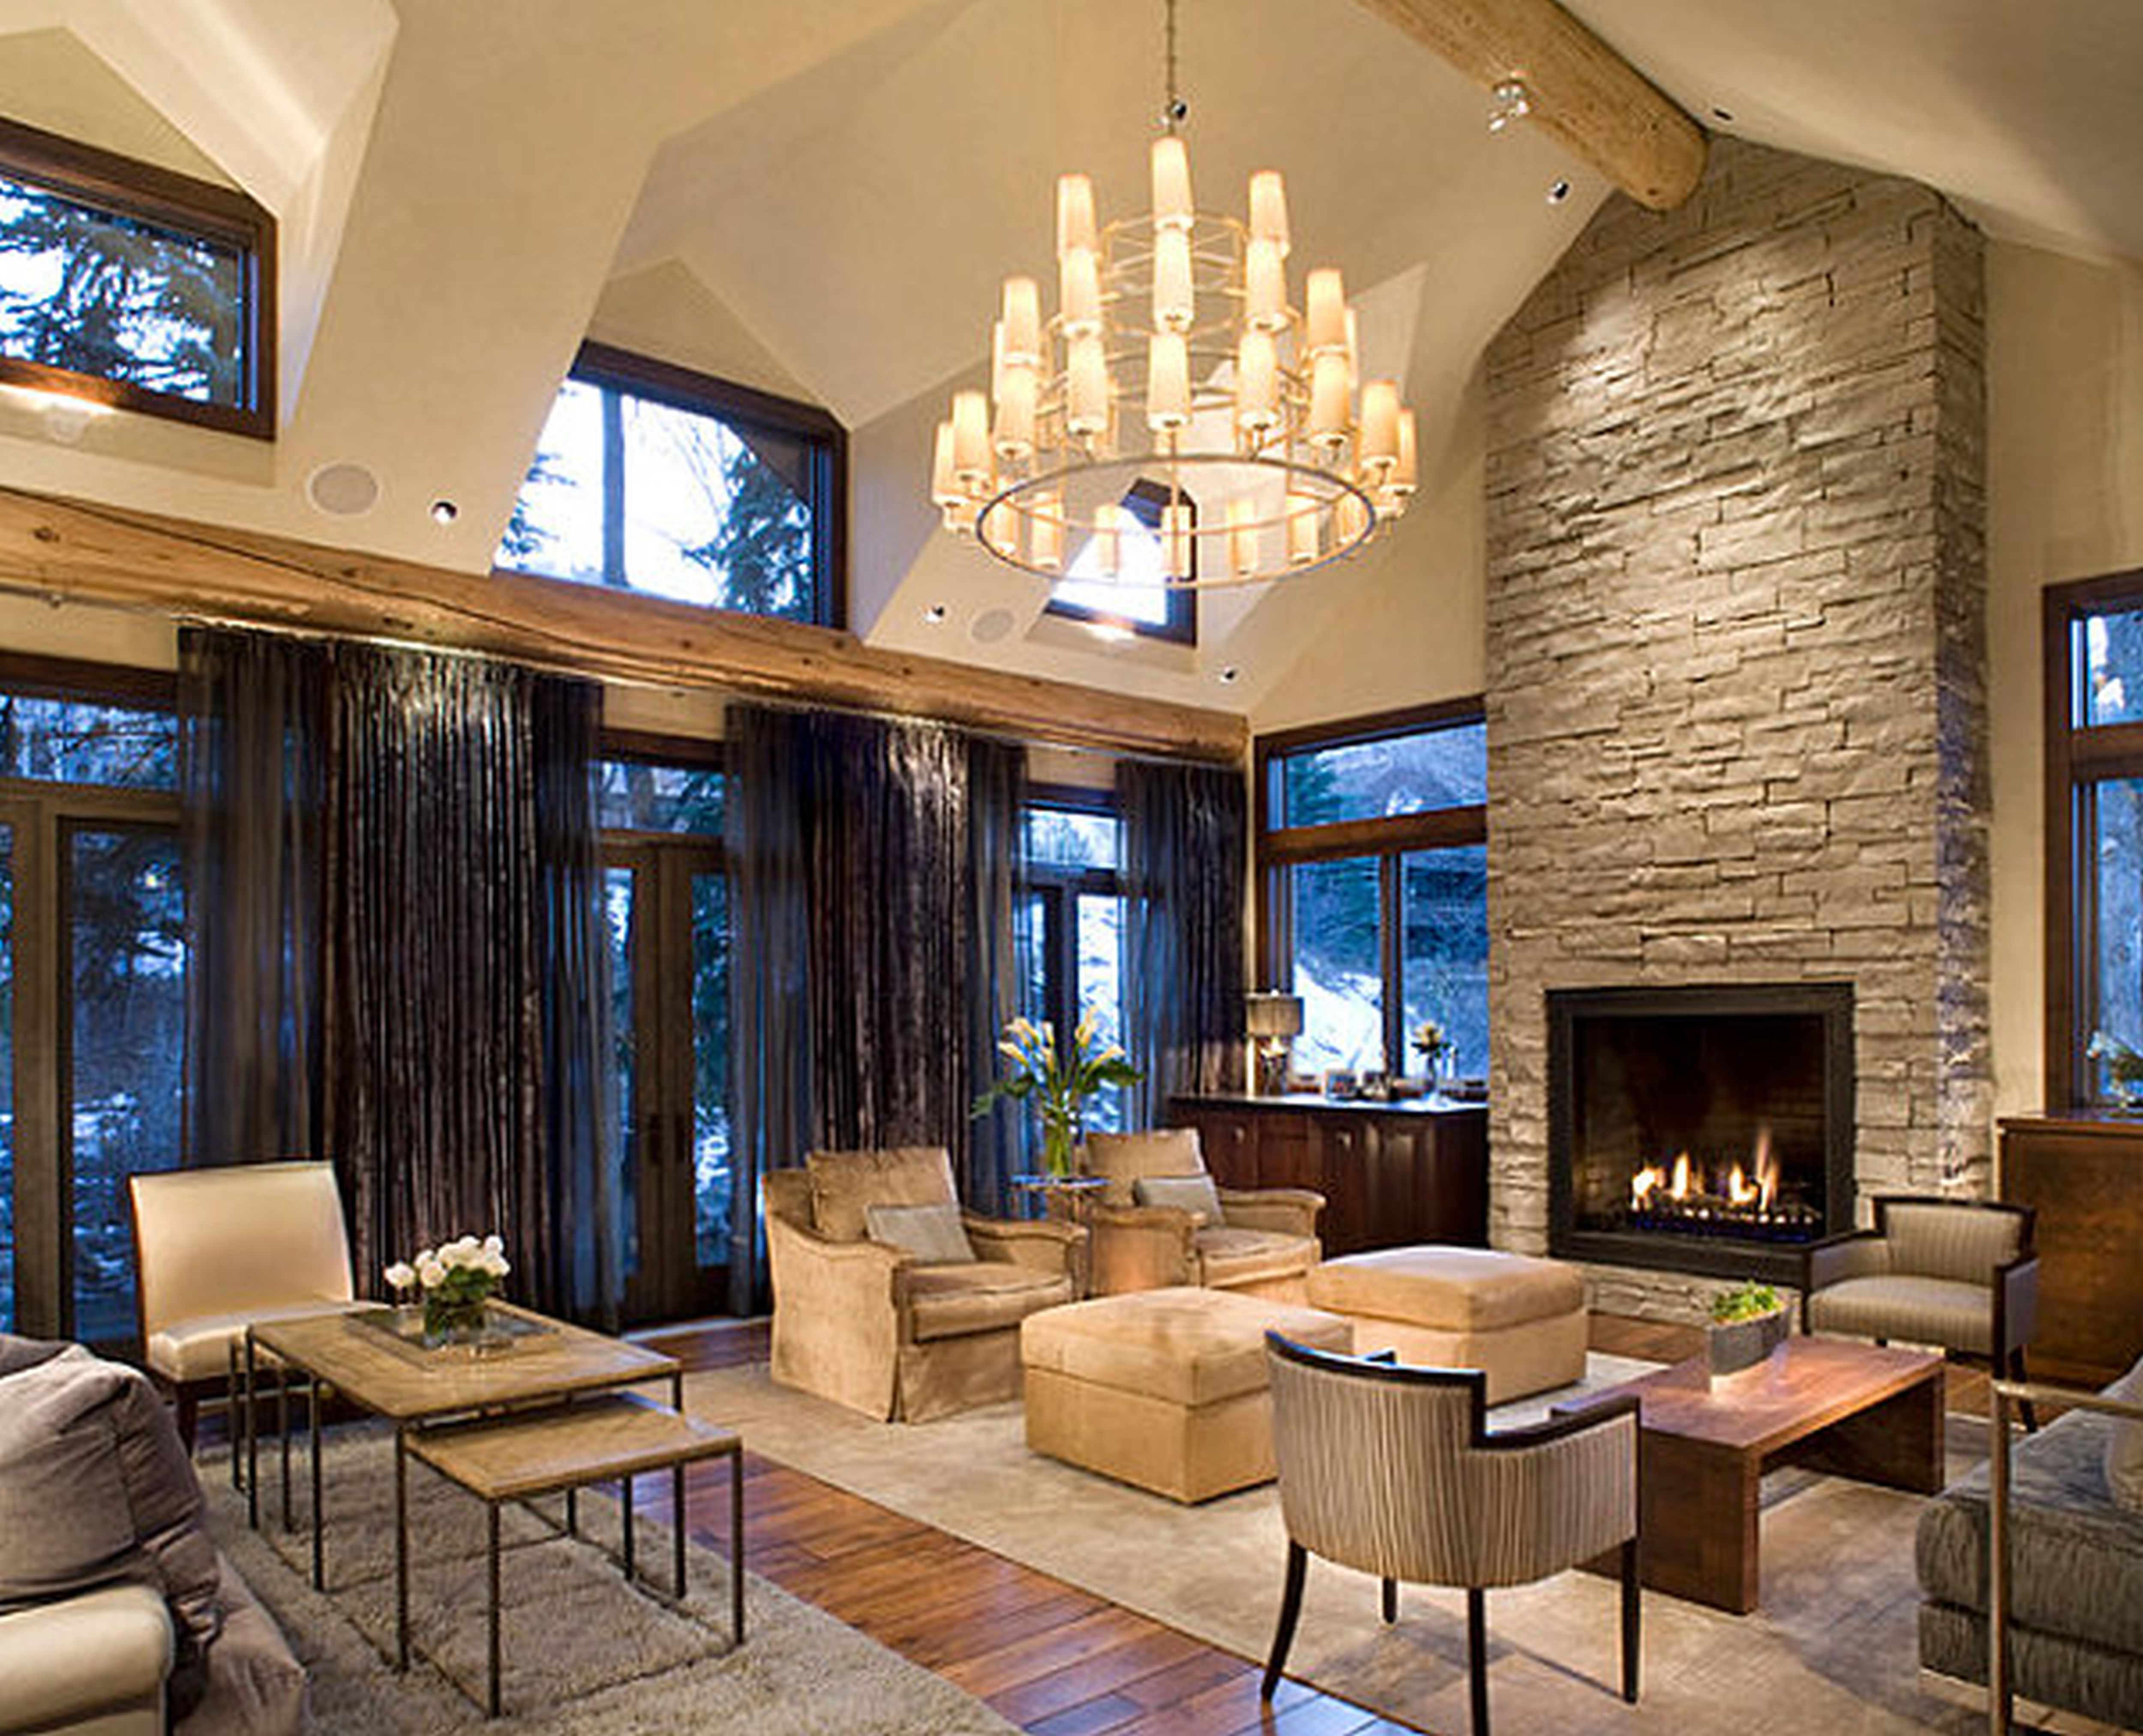 Astonishing Rustic Meets Modern Living Room Interior Decoration With Stone Fireplace D Modern Rustic Living Room Modern Living Room Interior Rustic Living Room